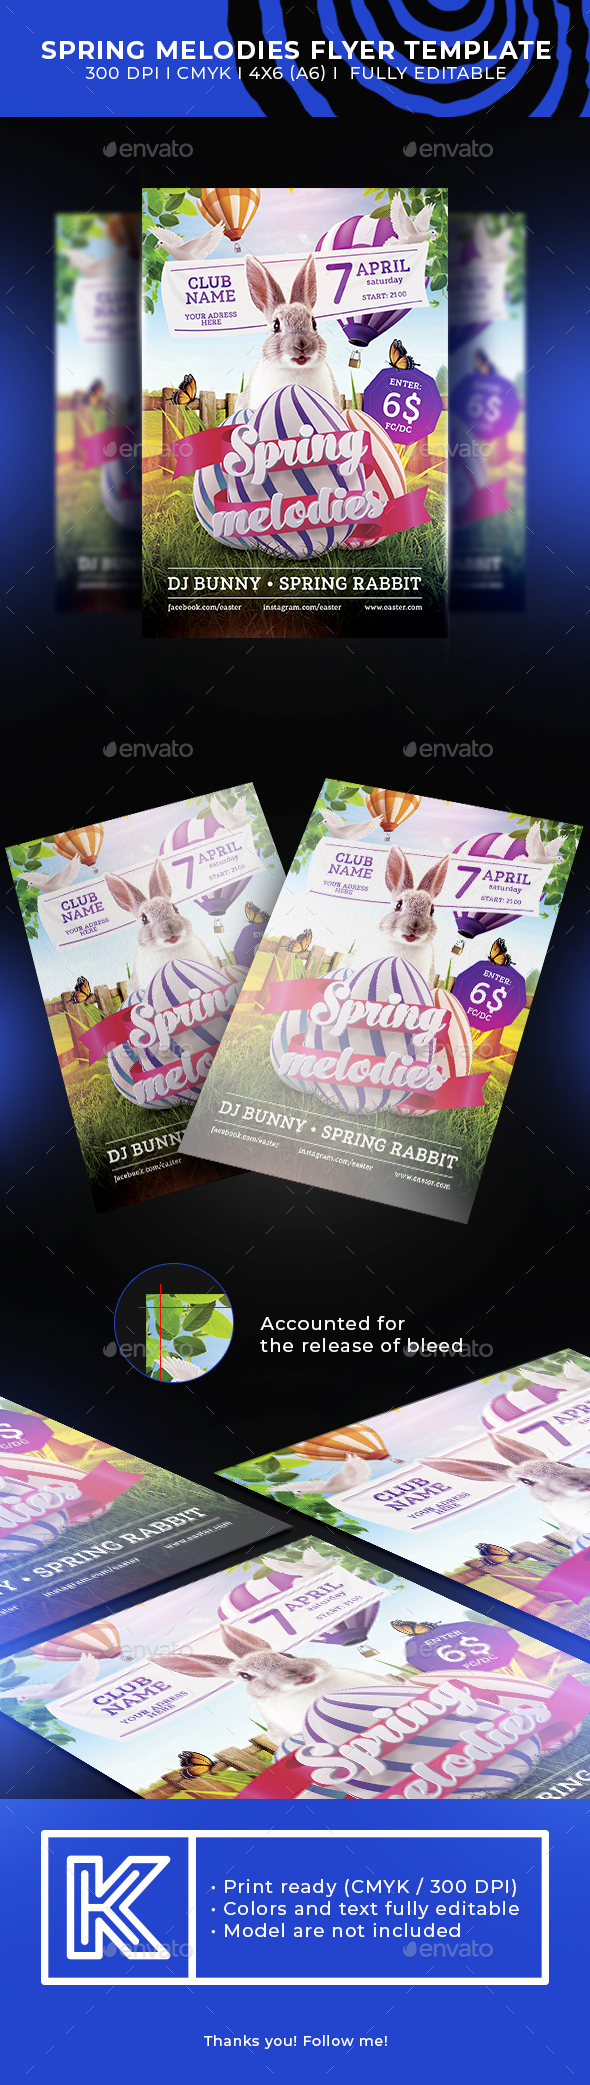 Spring melodies flyer template - Holidays Events